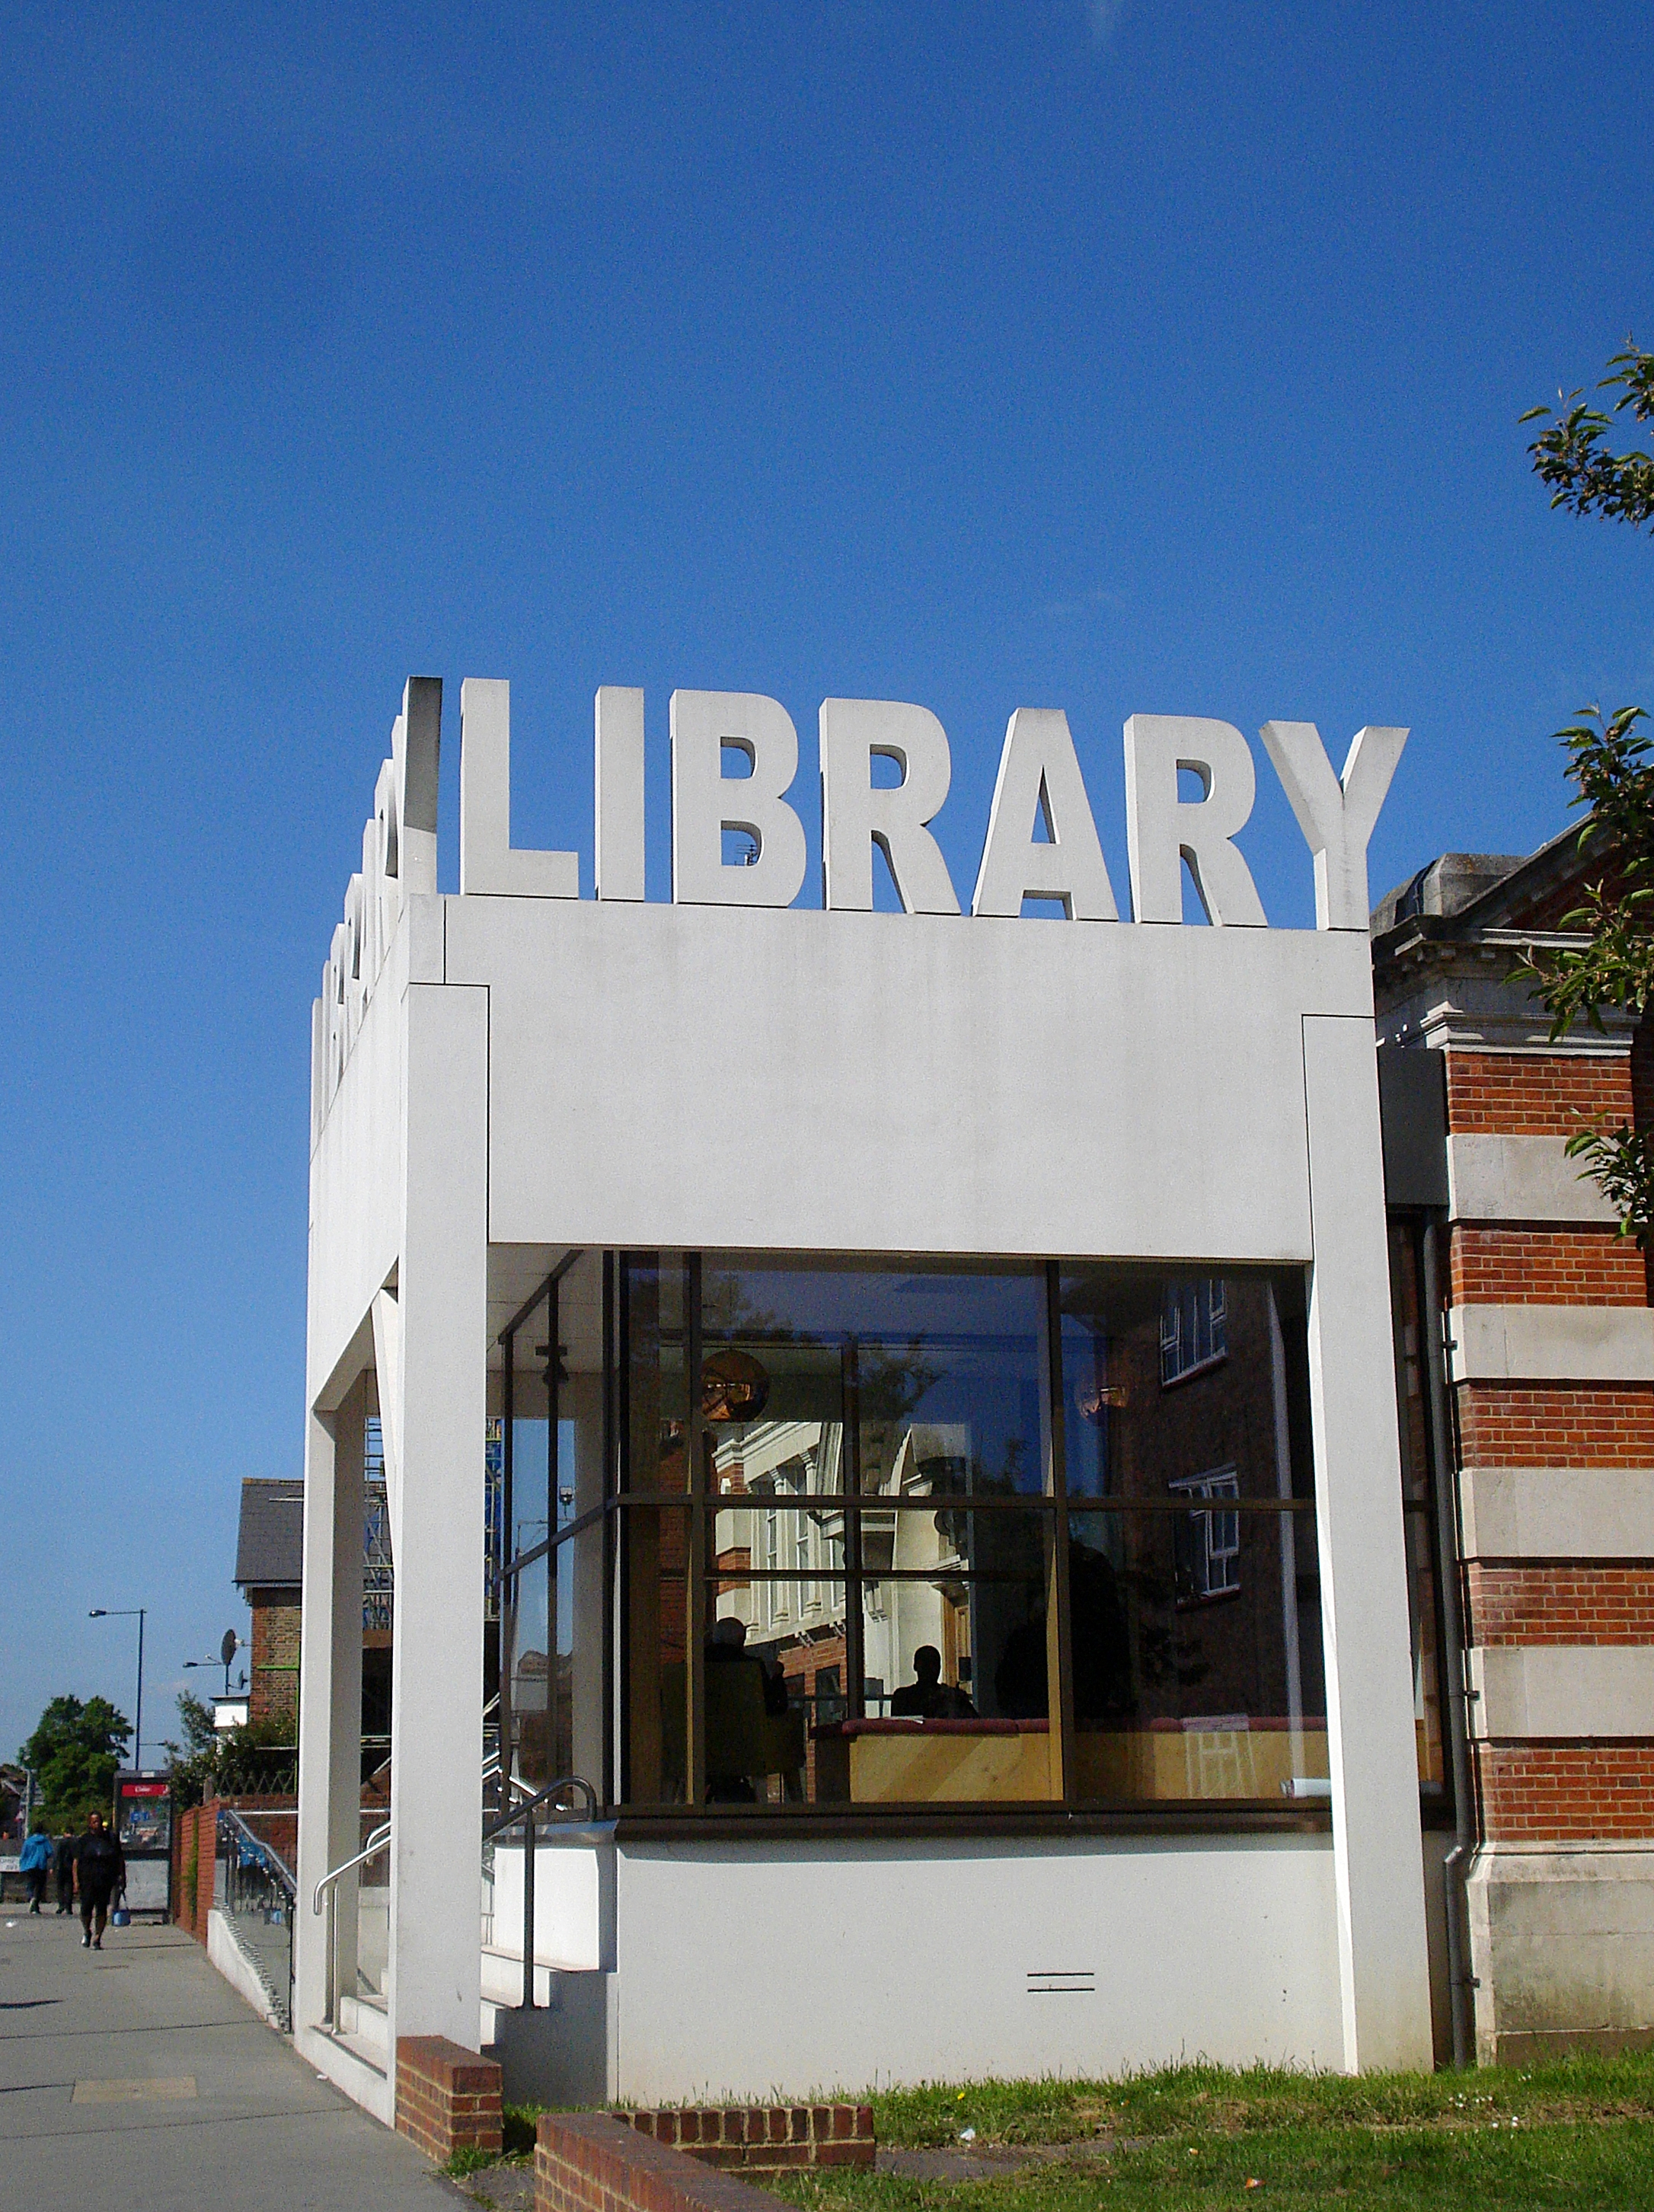 thornton heath library south london club